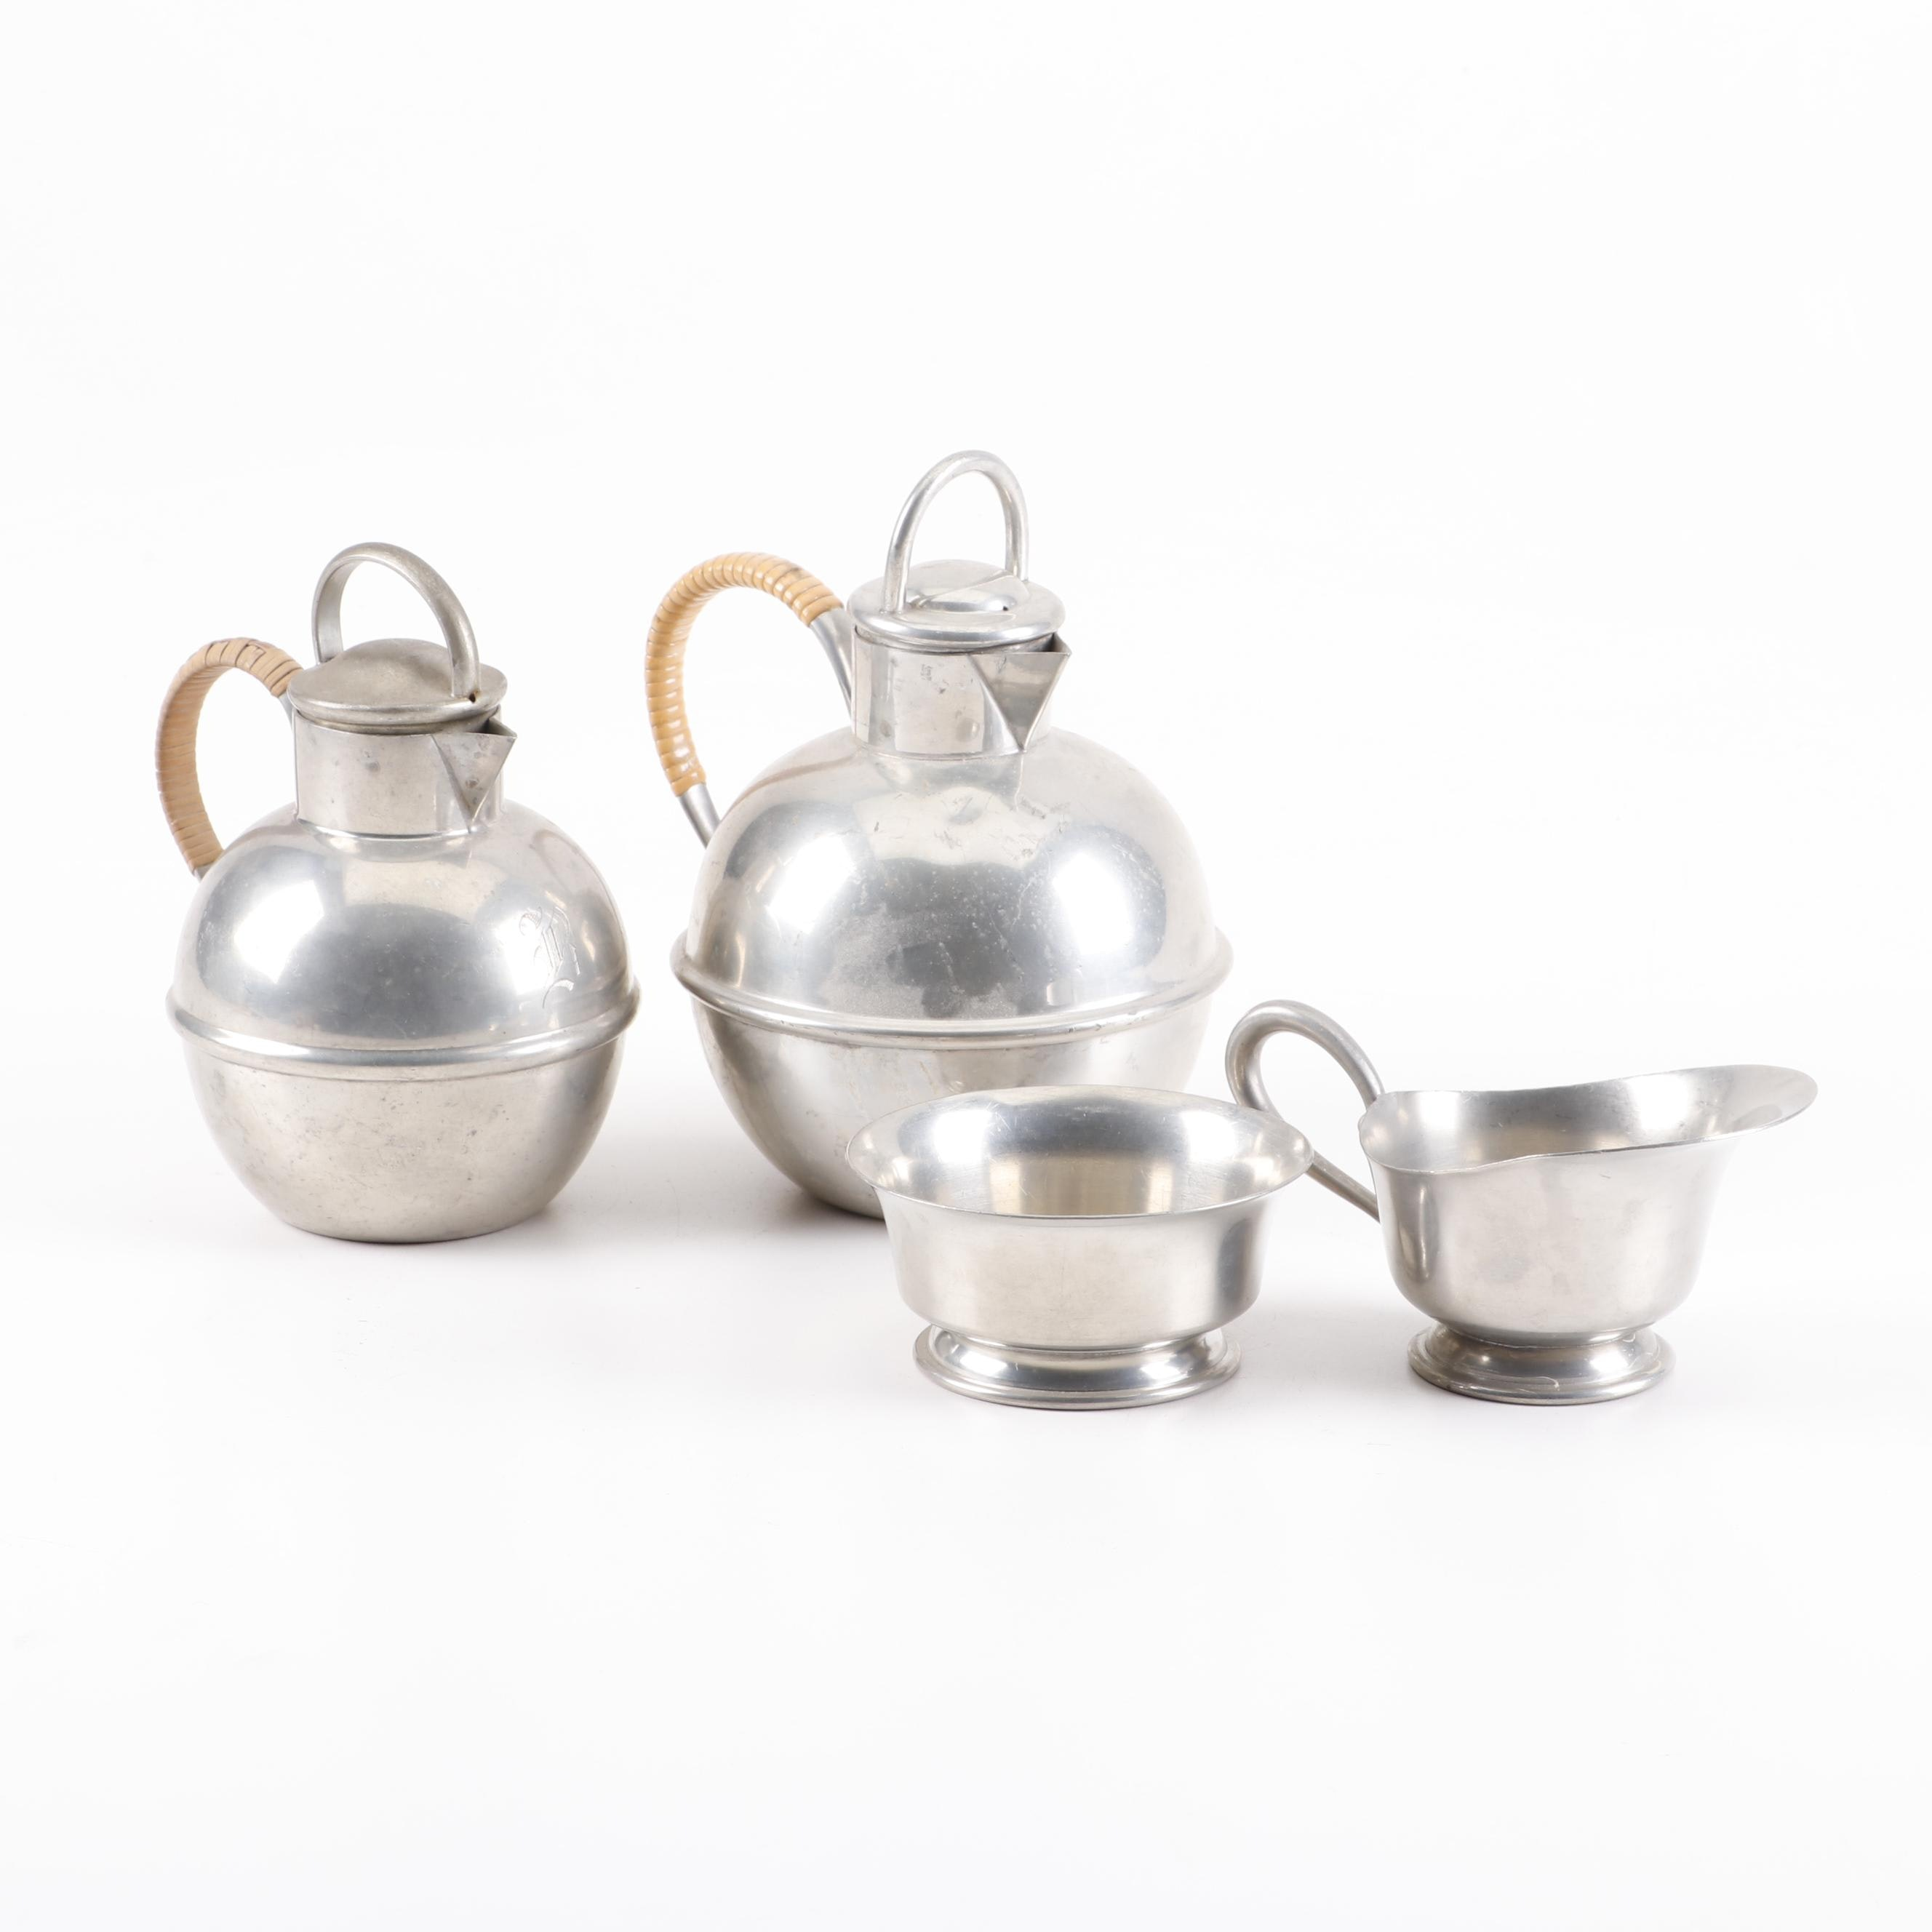 Royal Holland and Hanle Pewter Assembled Tea and Coffee Service